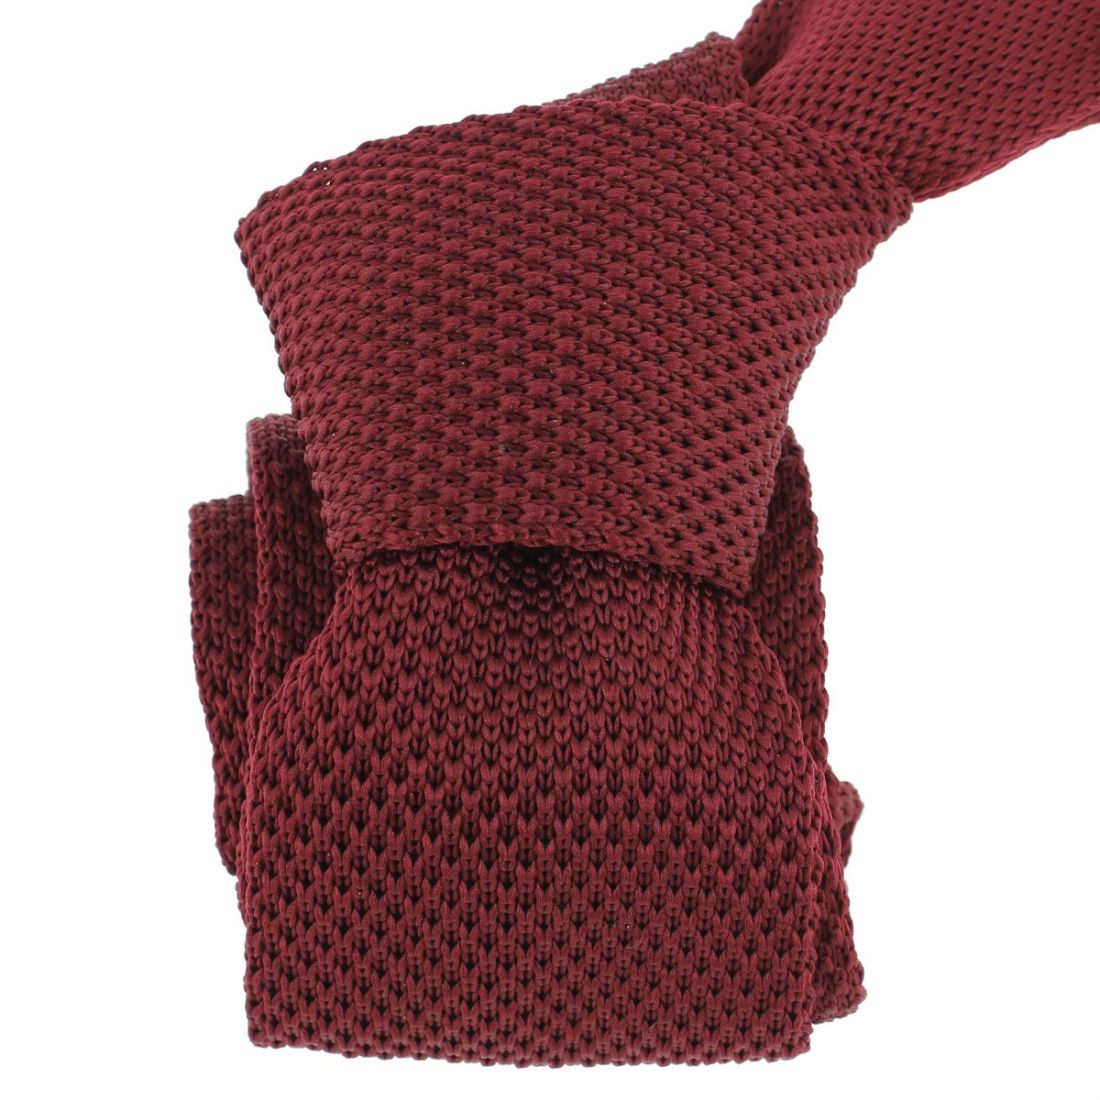 7964114500ff3 Cravate Tricot. Bordeaux Clj Charles Le Jeune Cravates. Loading zoom